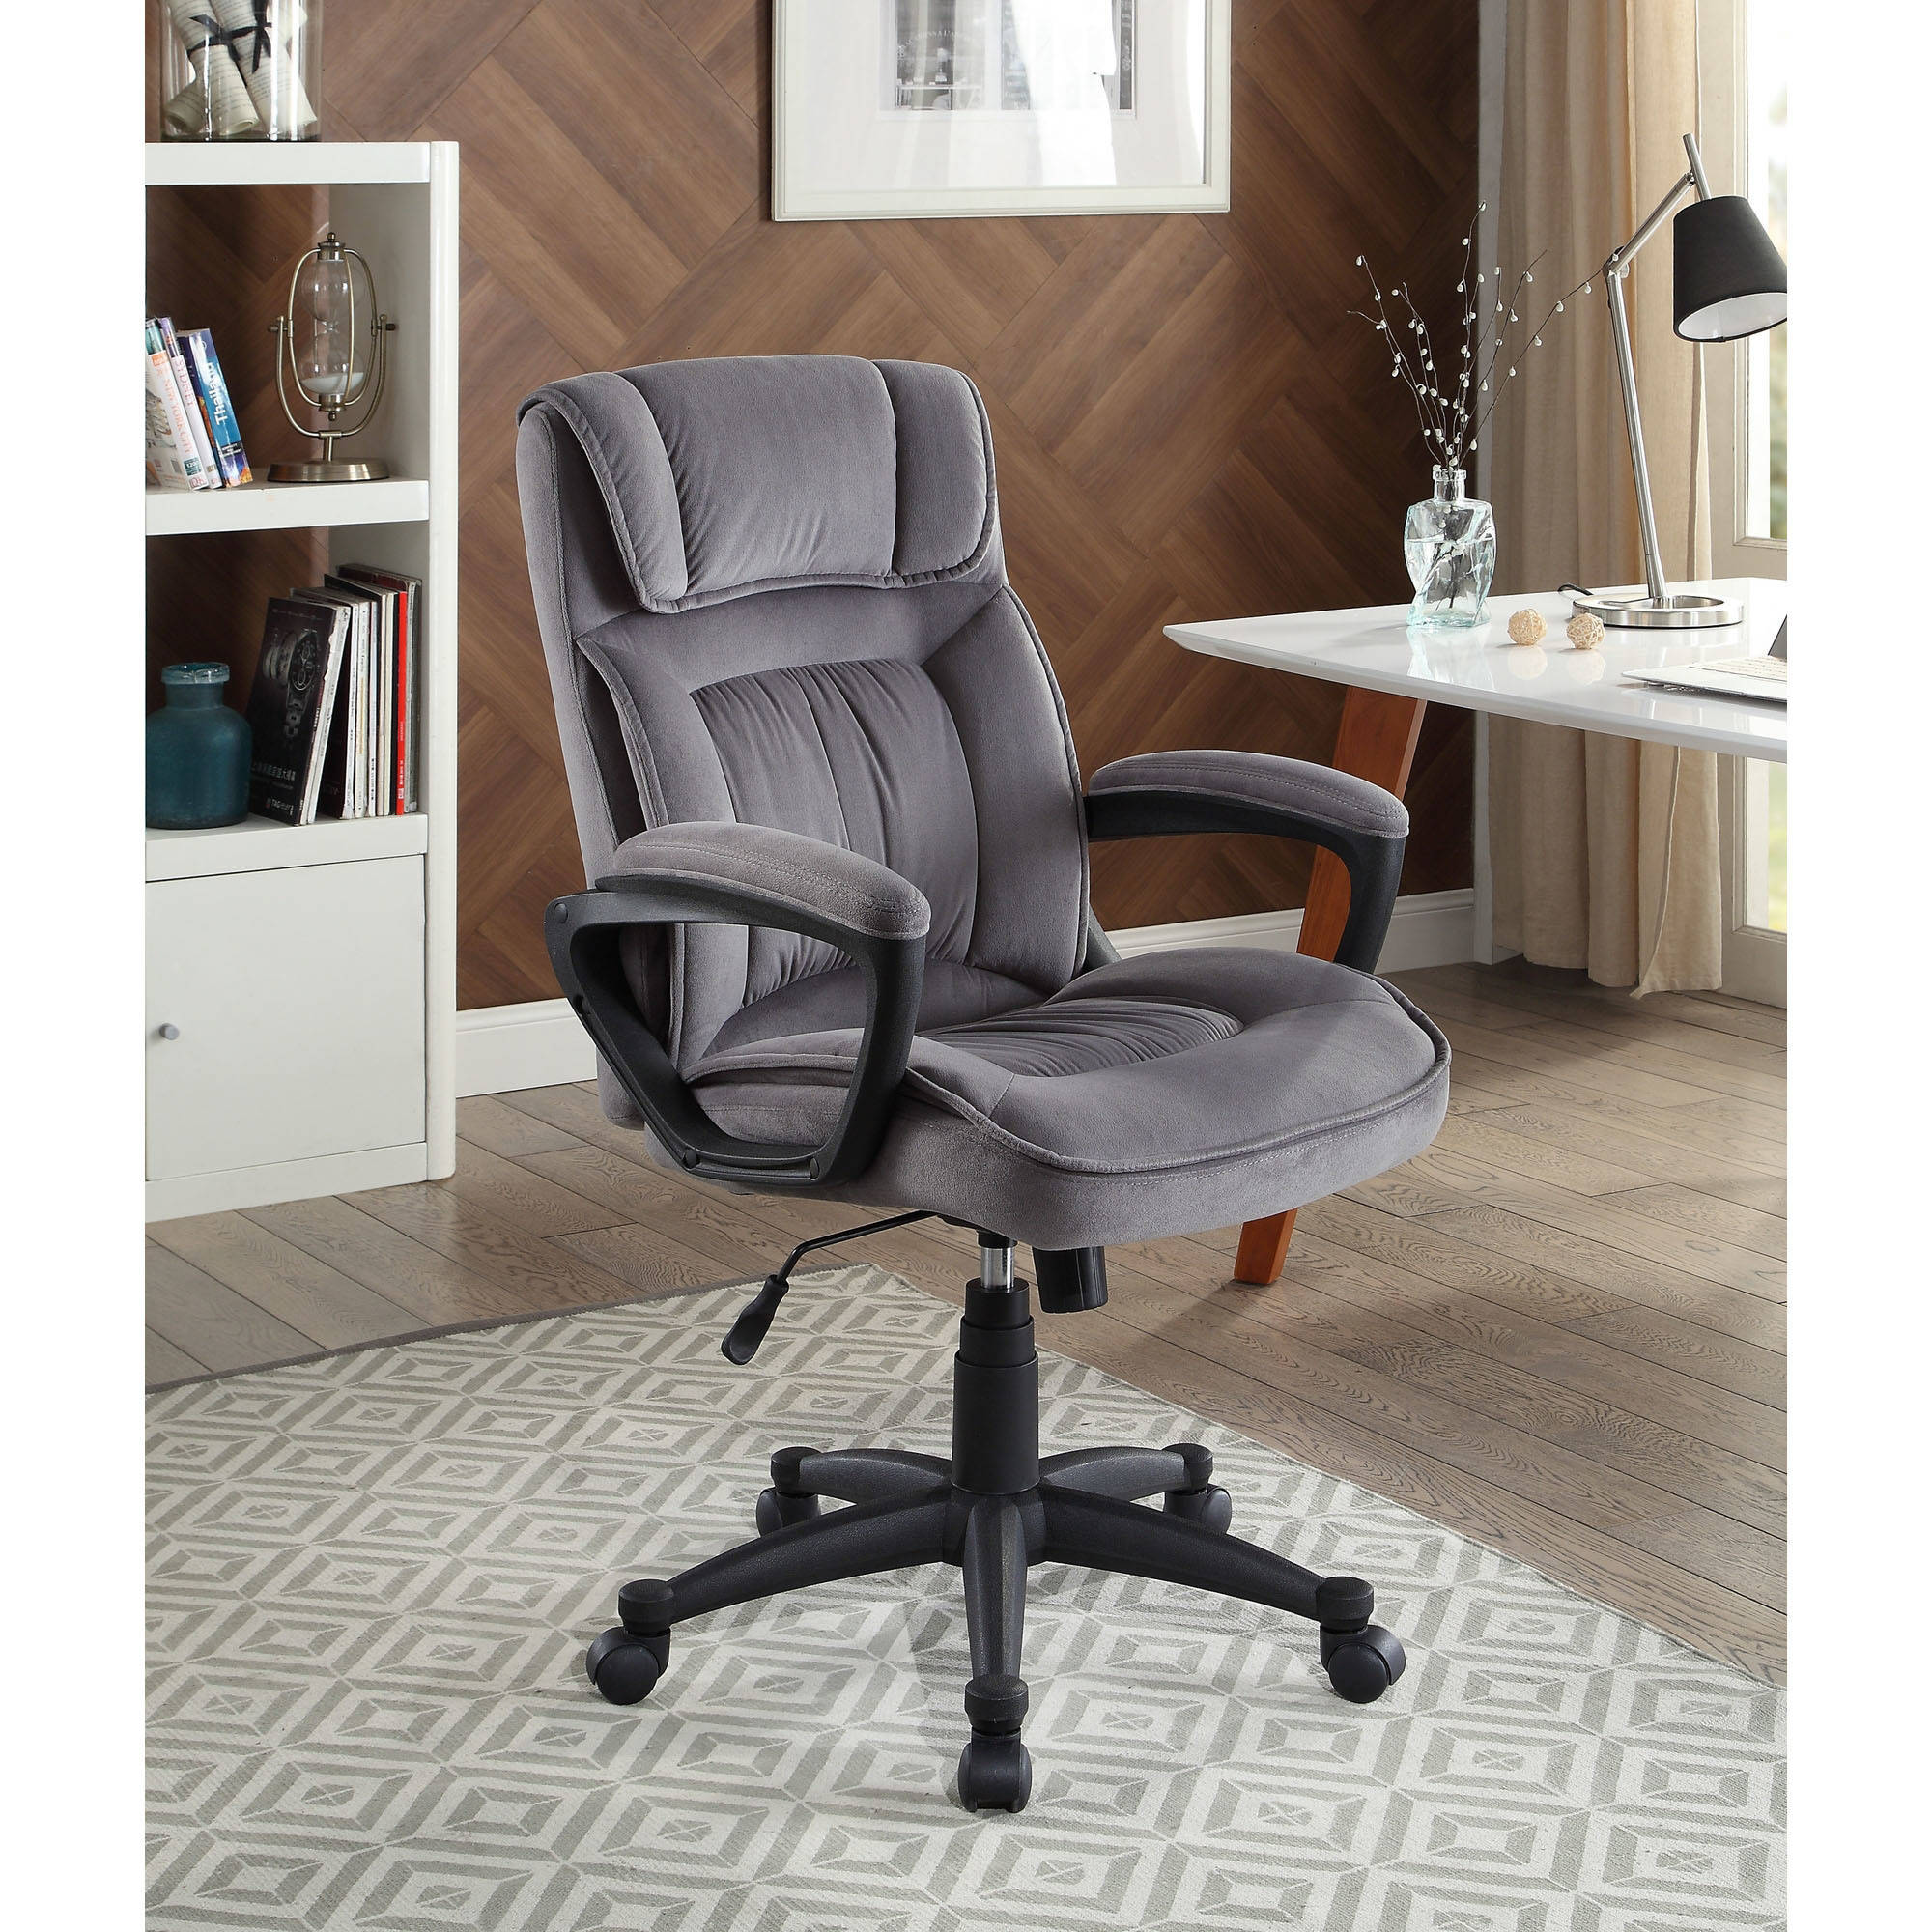 Serta Executive Office Chair in Velvet Gray Microfiber Black Base  sc 1 st  Walmart : black microfiber chair - Cheerinfomania.Com